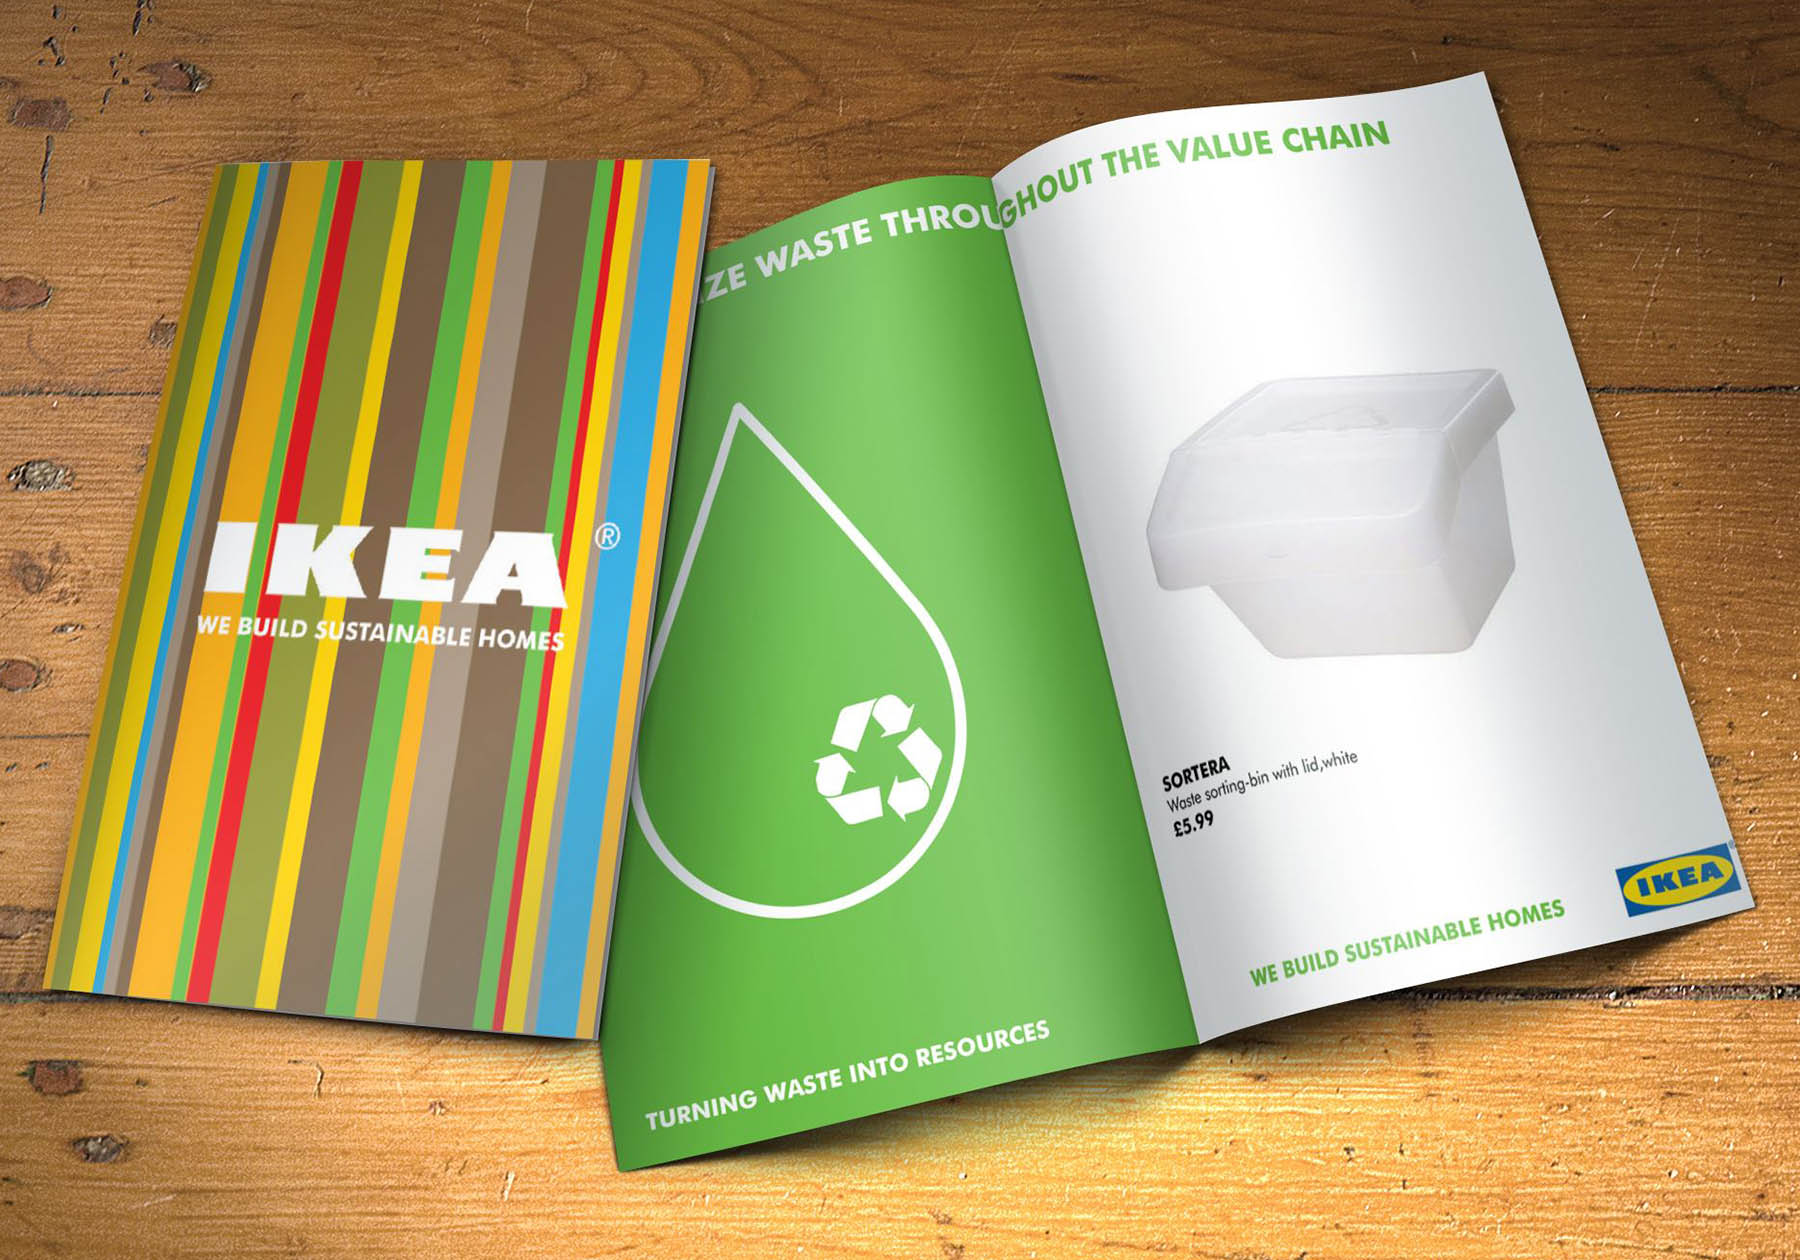 Double page spread for Ikea's position on turning waste into resources